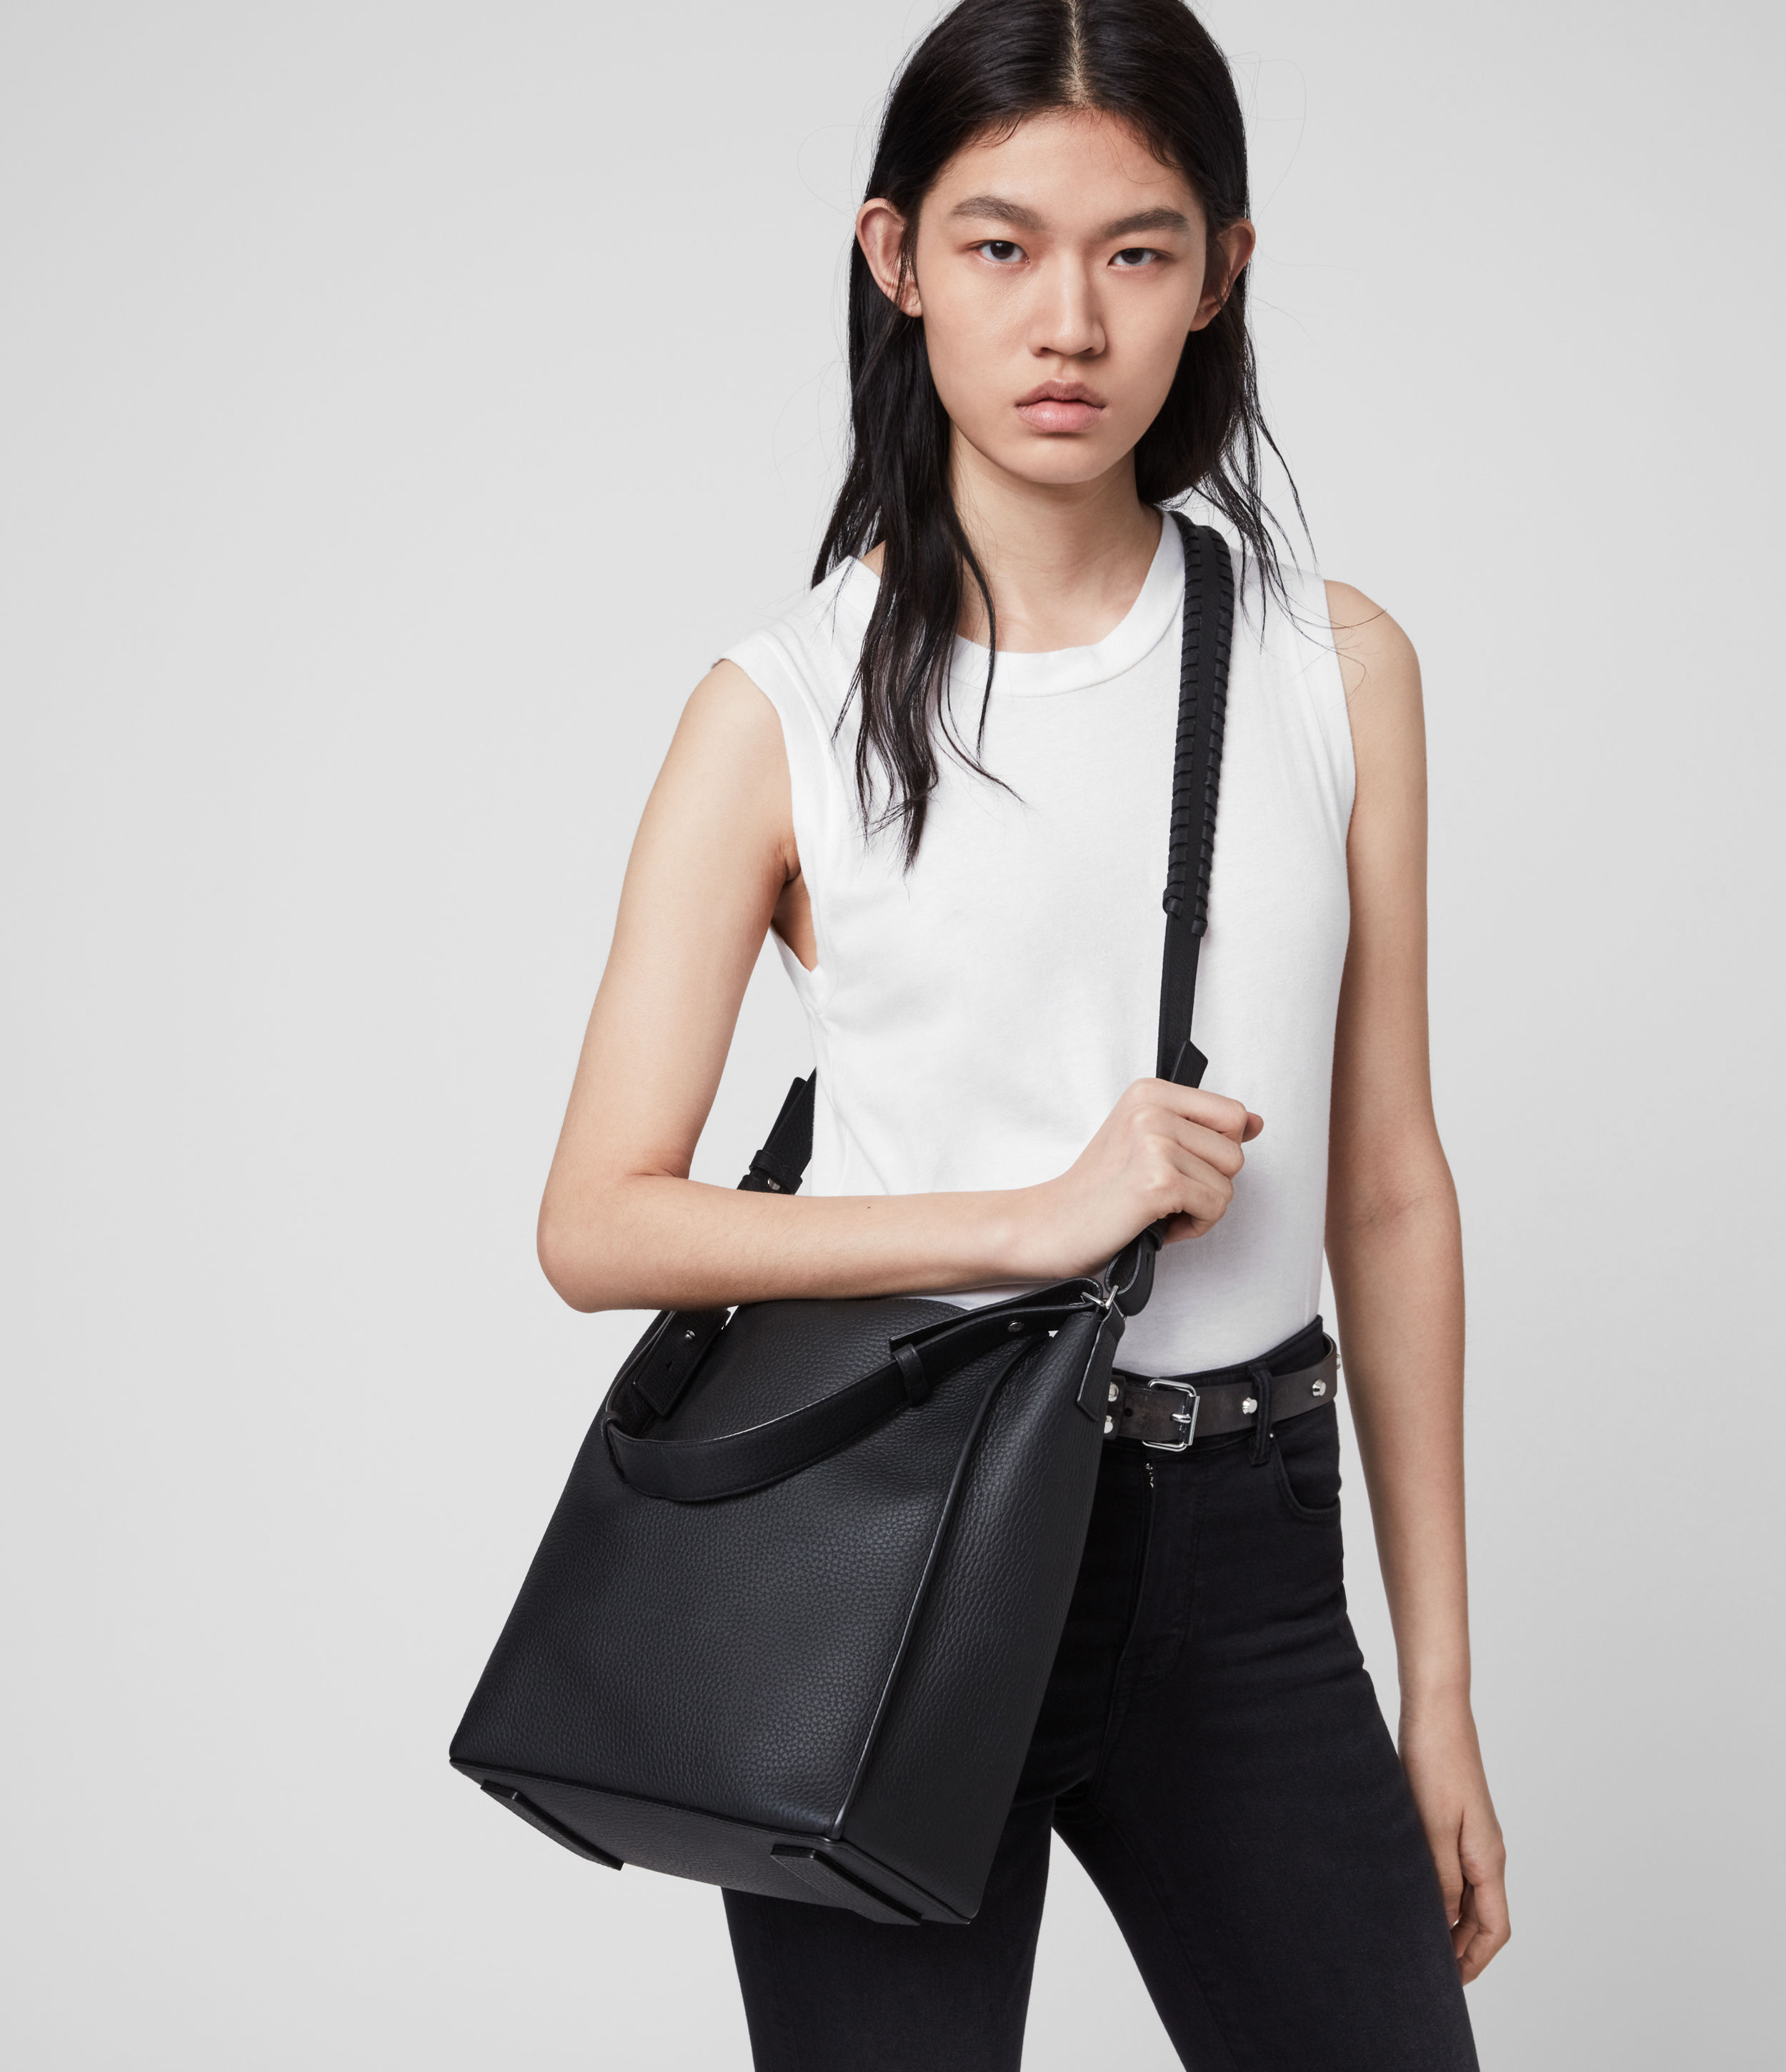 AllSaints Women's Leather Kita Crossbody Bag, Black